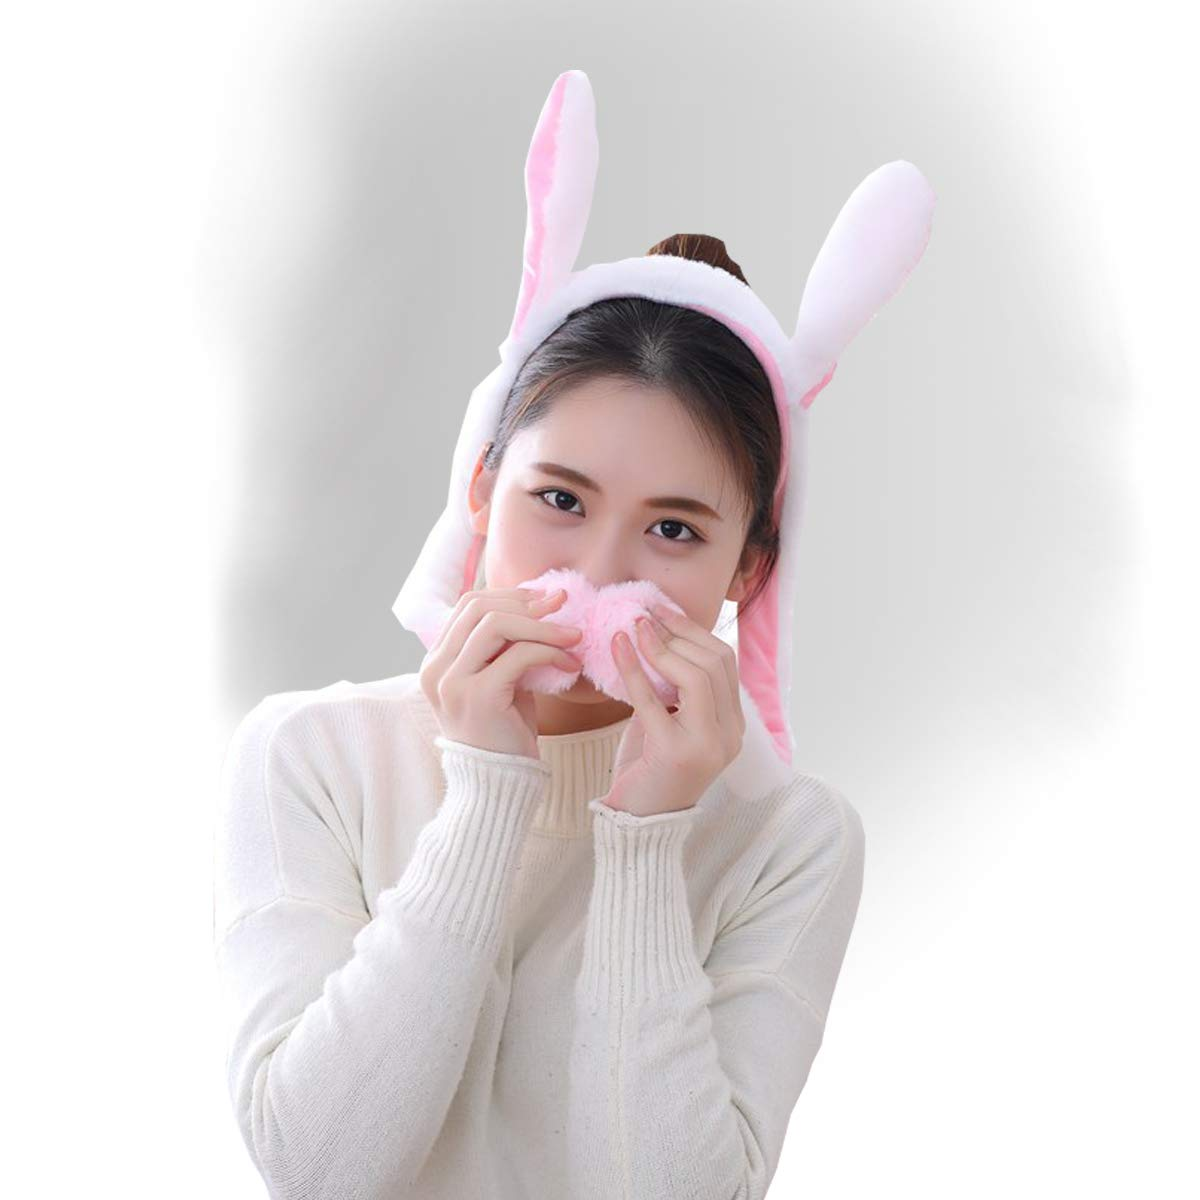 yqtyqs Bunny Headband Rabbit Headware Moving White Ear with Airbag Animal Gift